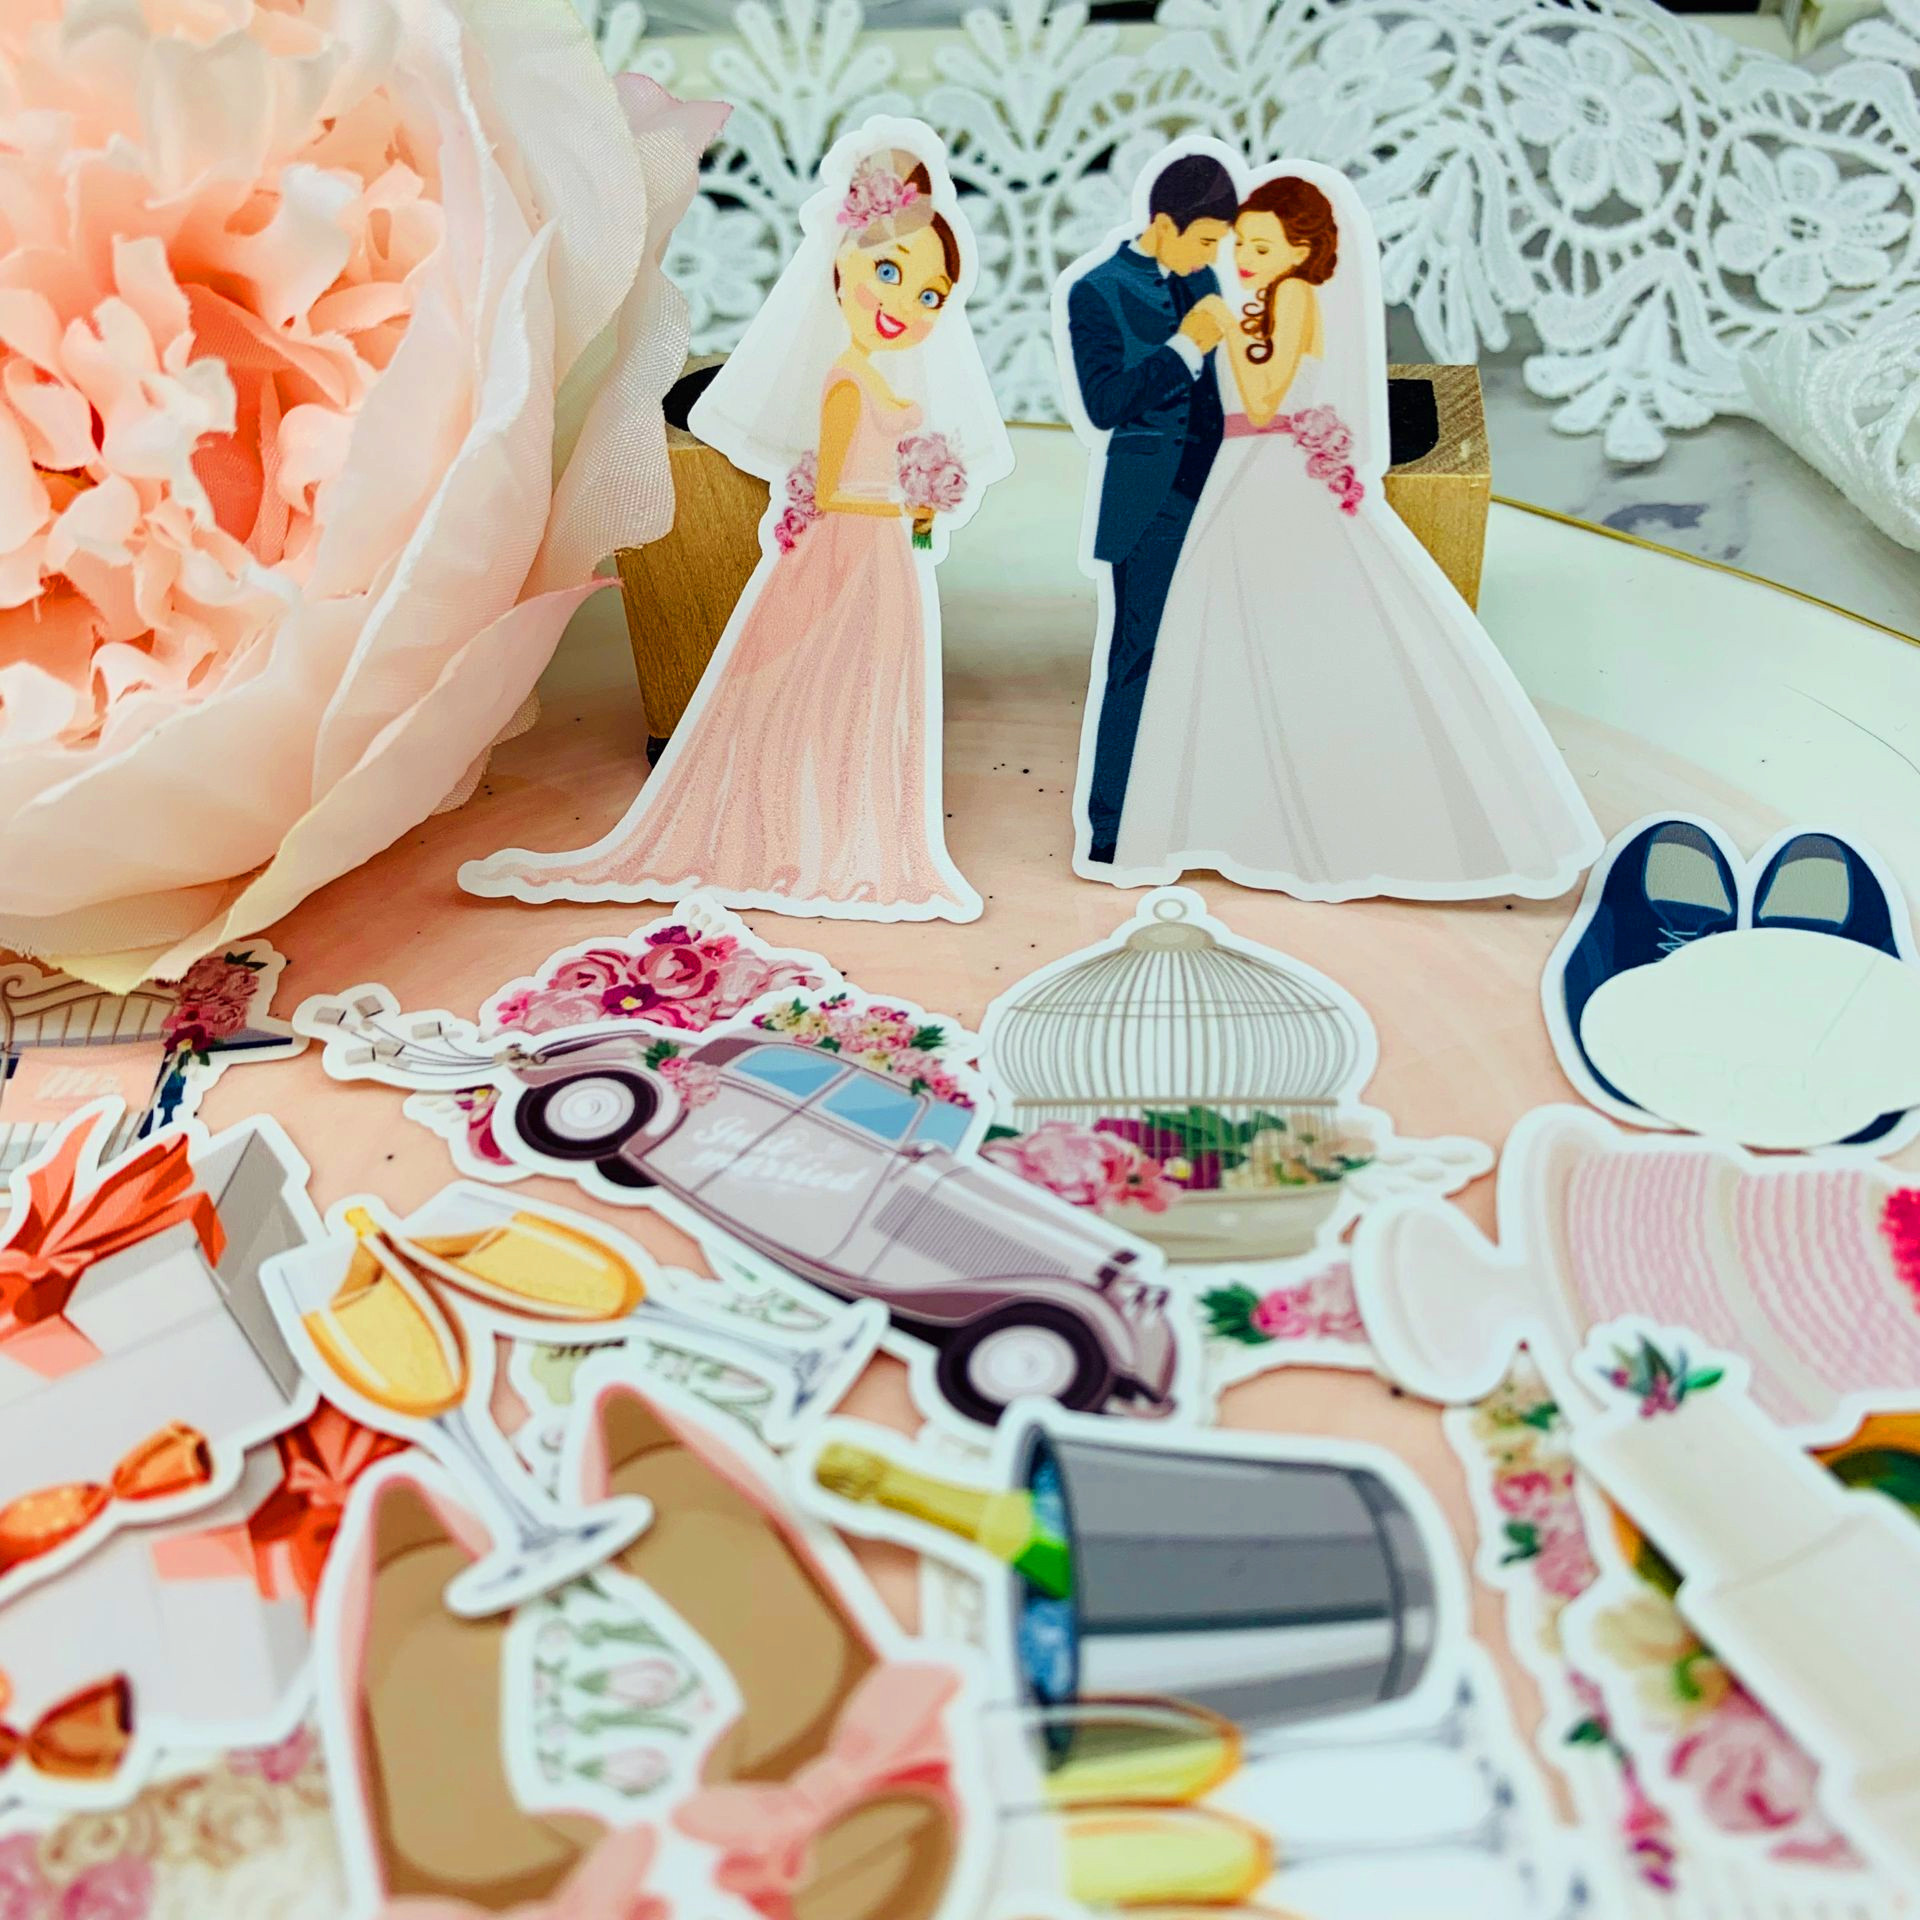 28 Pcs Cute Wedding Party Pattern Paper Stickers For Kids Homemade Book Stickers On Laptop / Decorative Scrapbooking / DIY